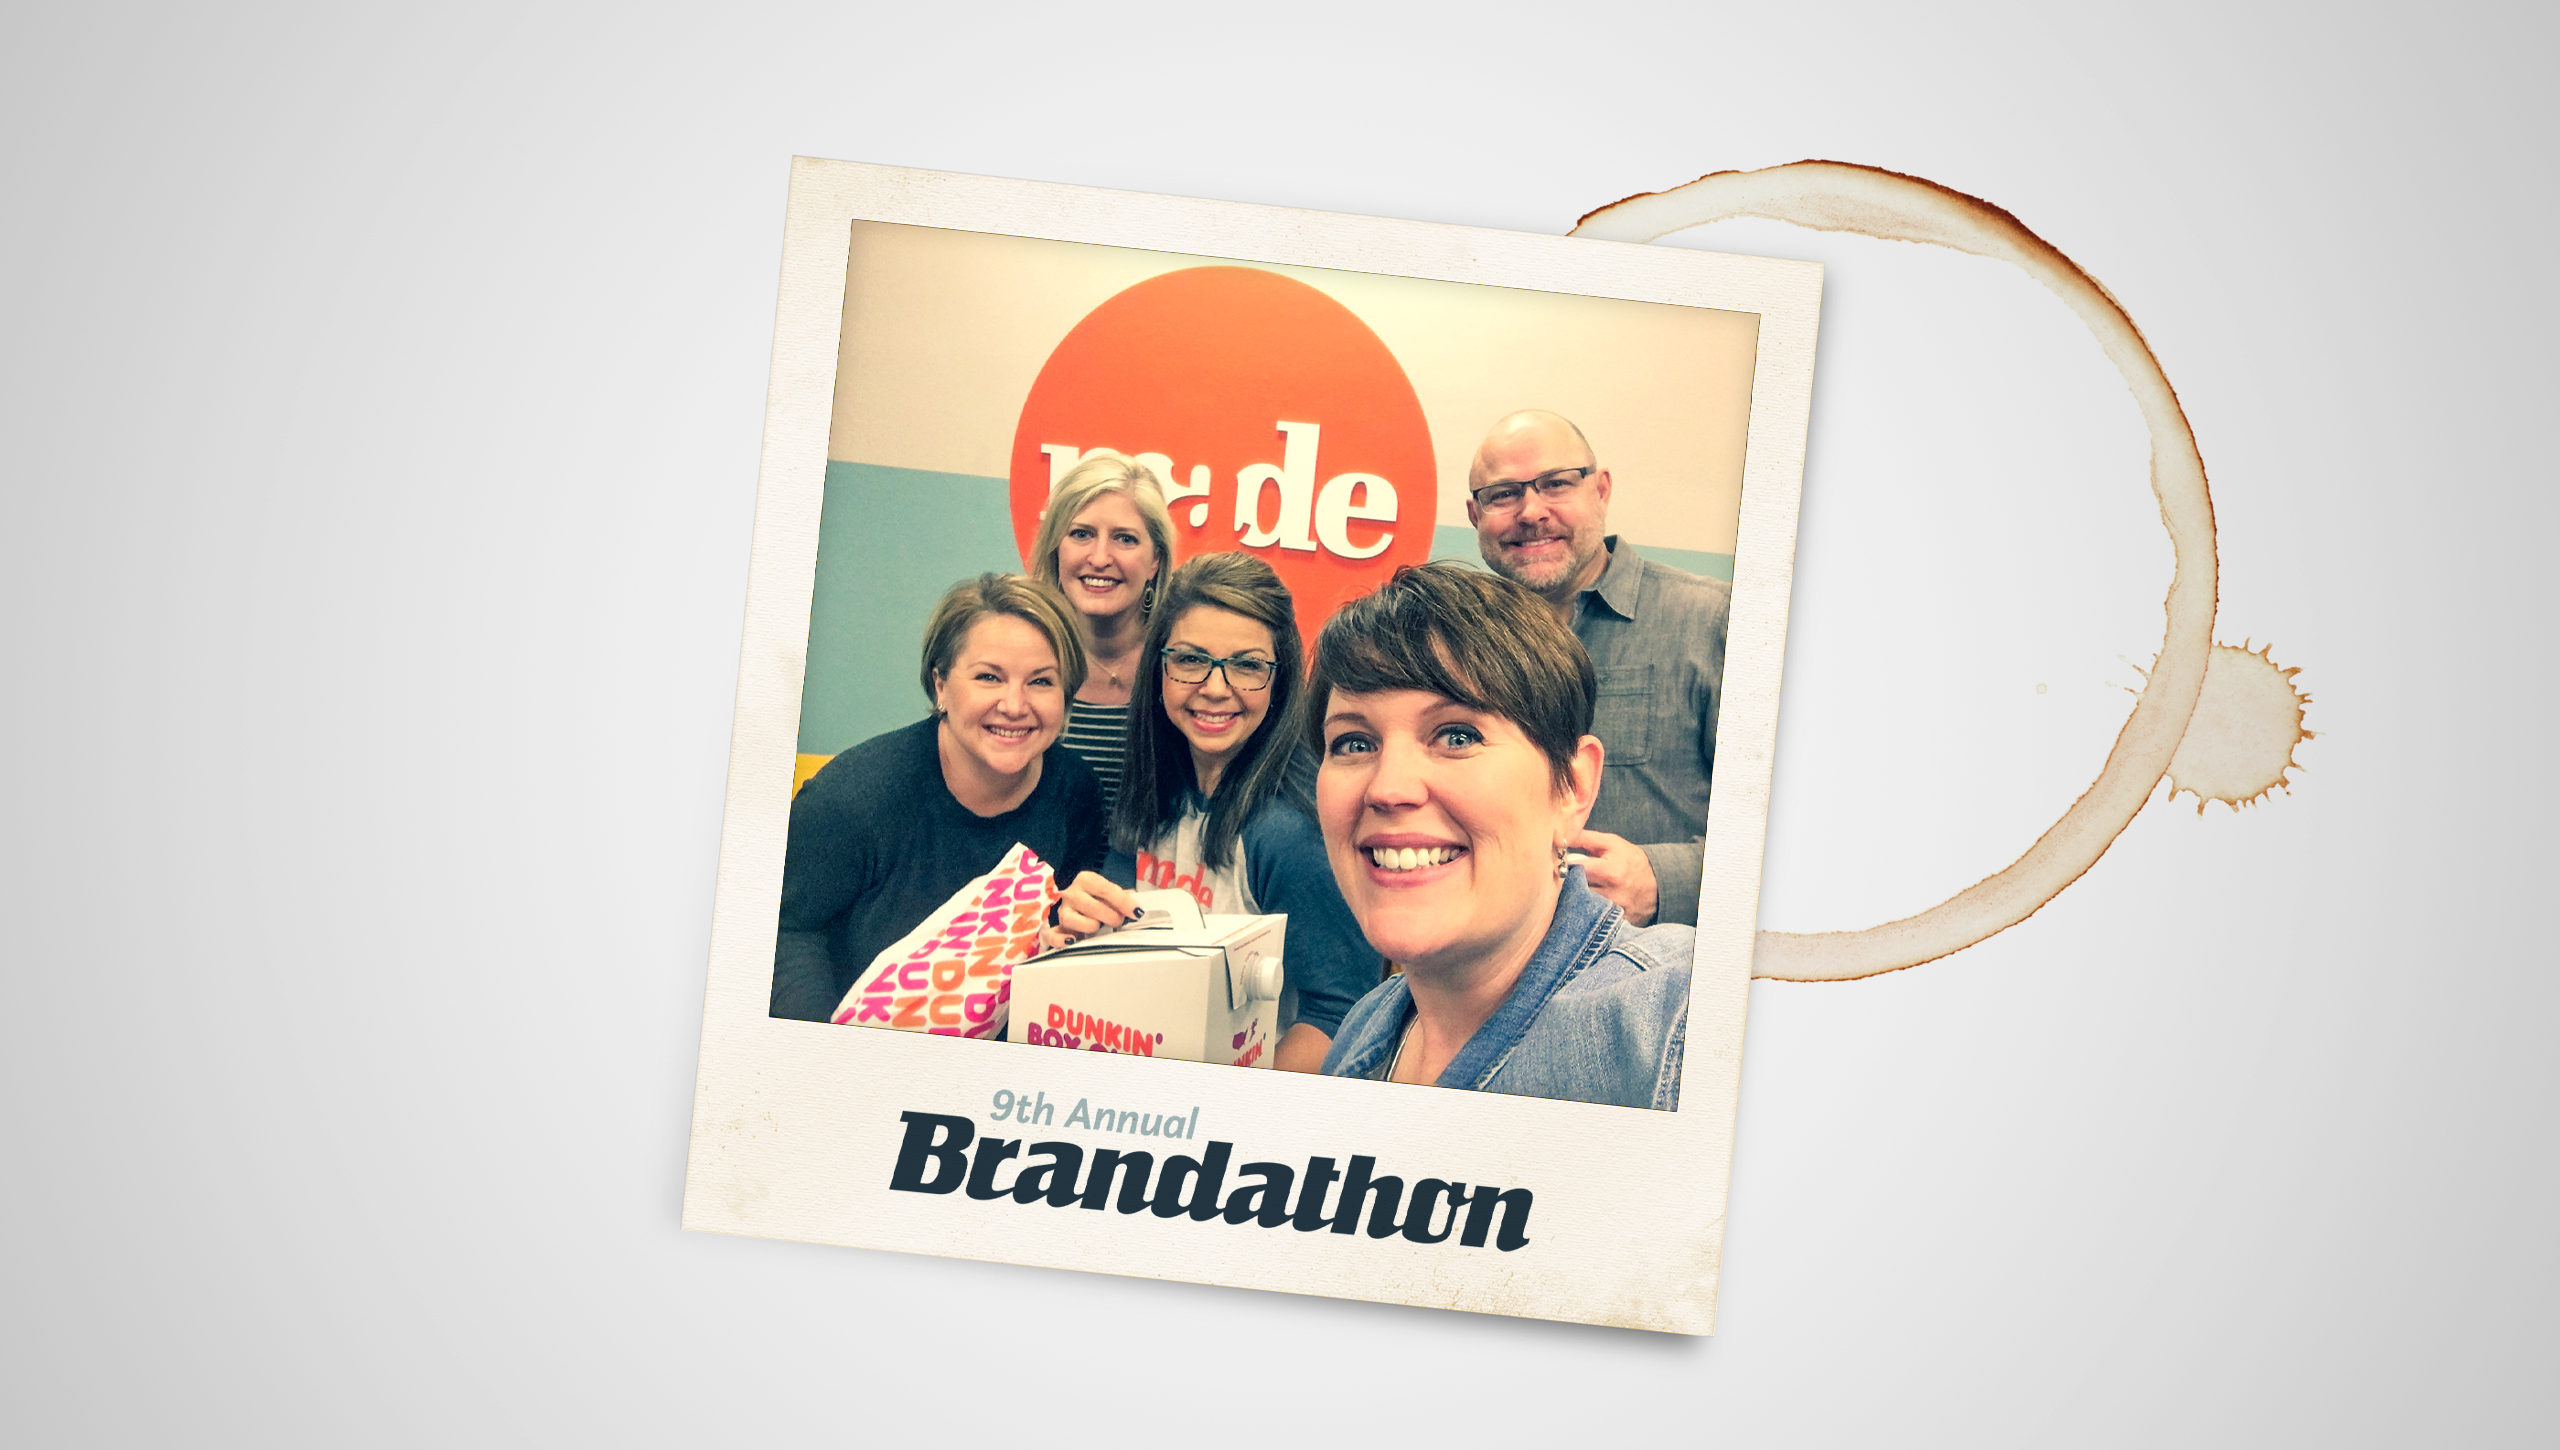 MADE Brandathon team photo